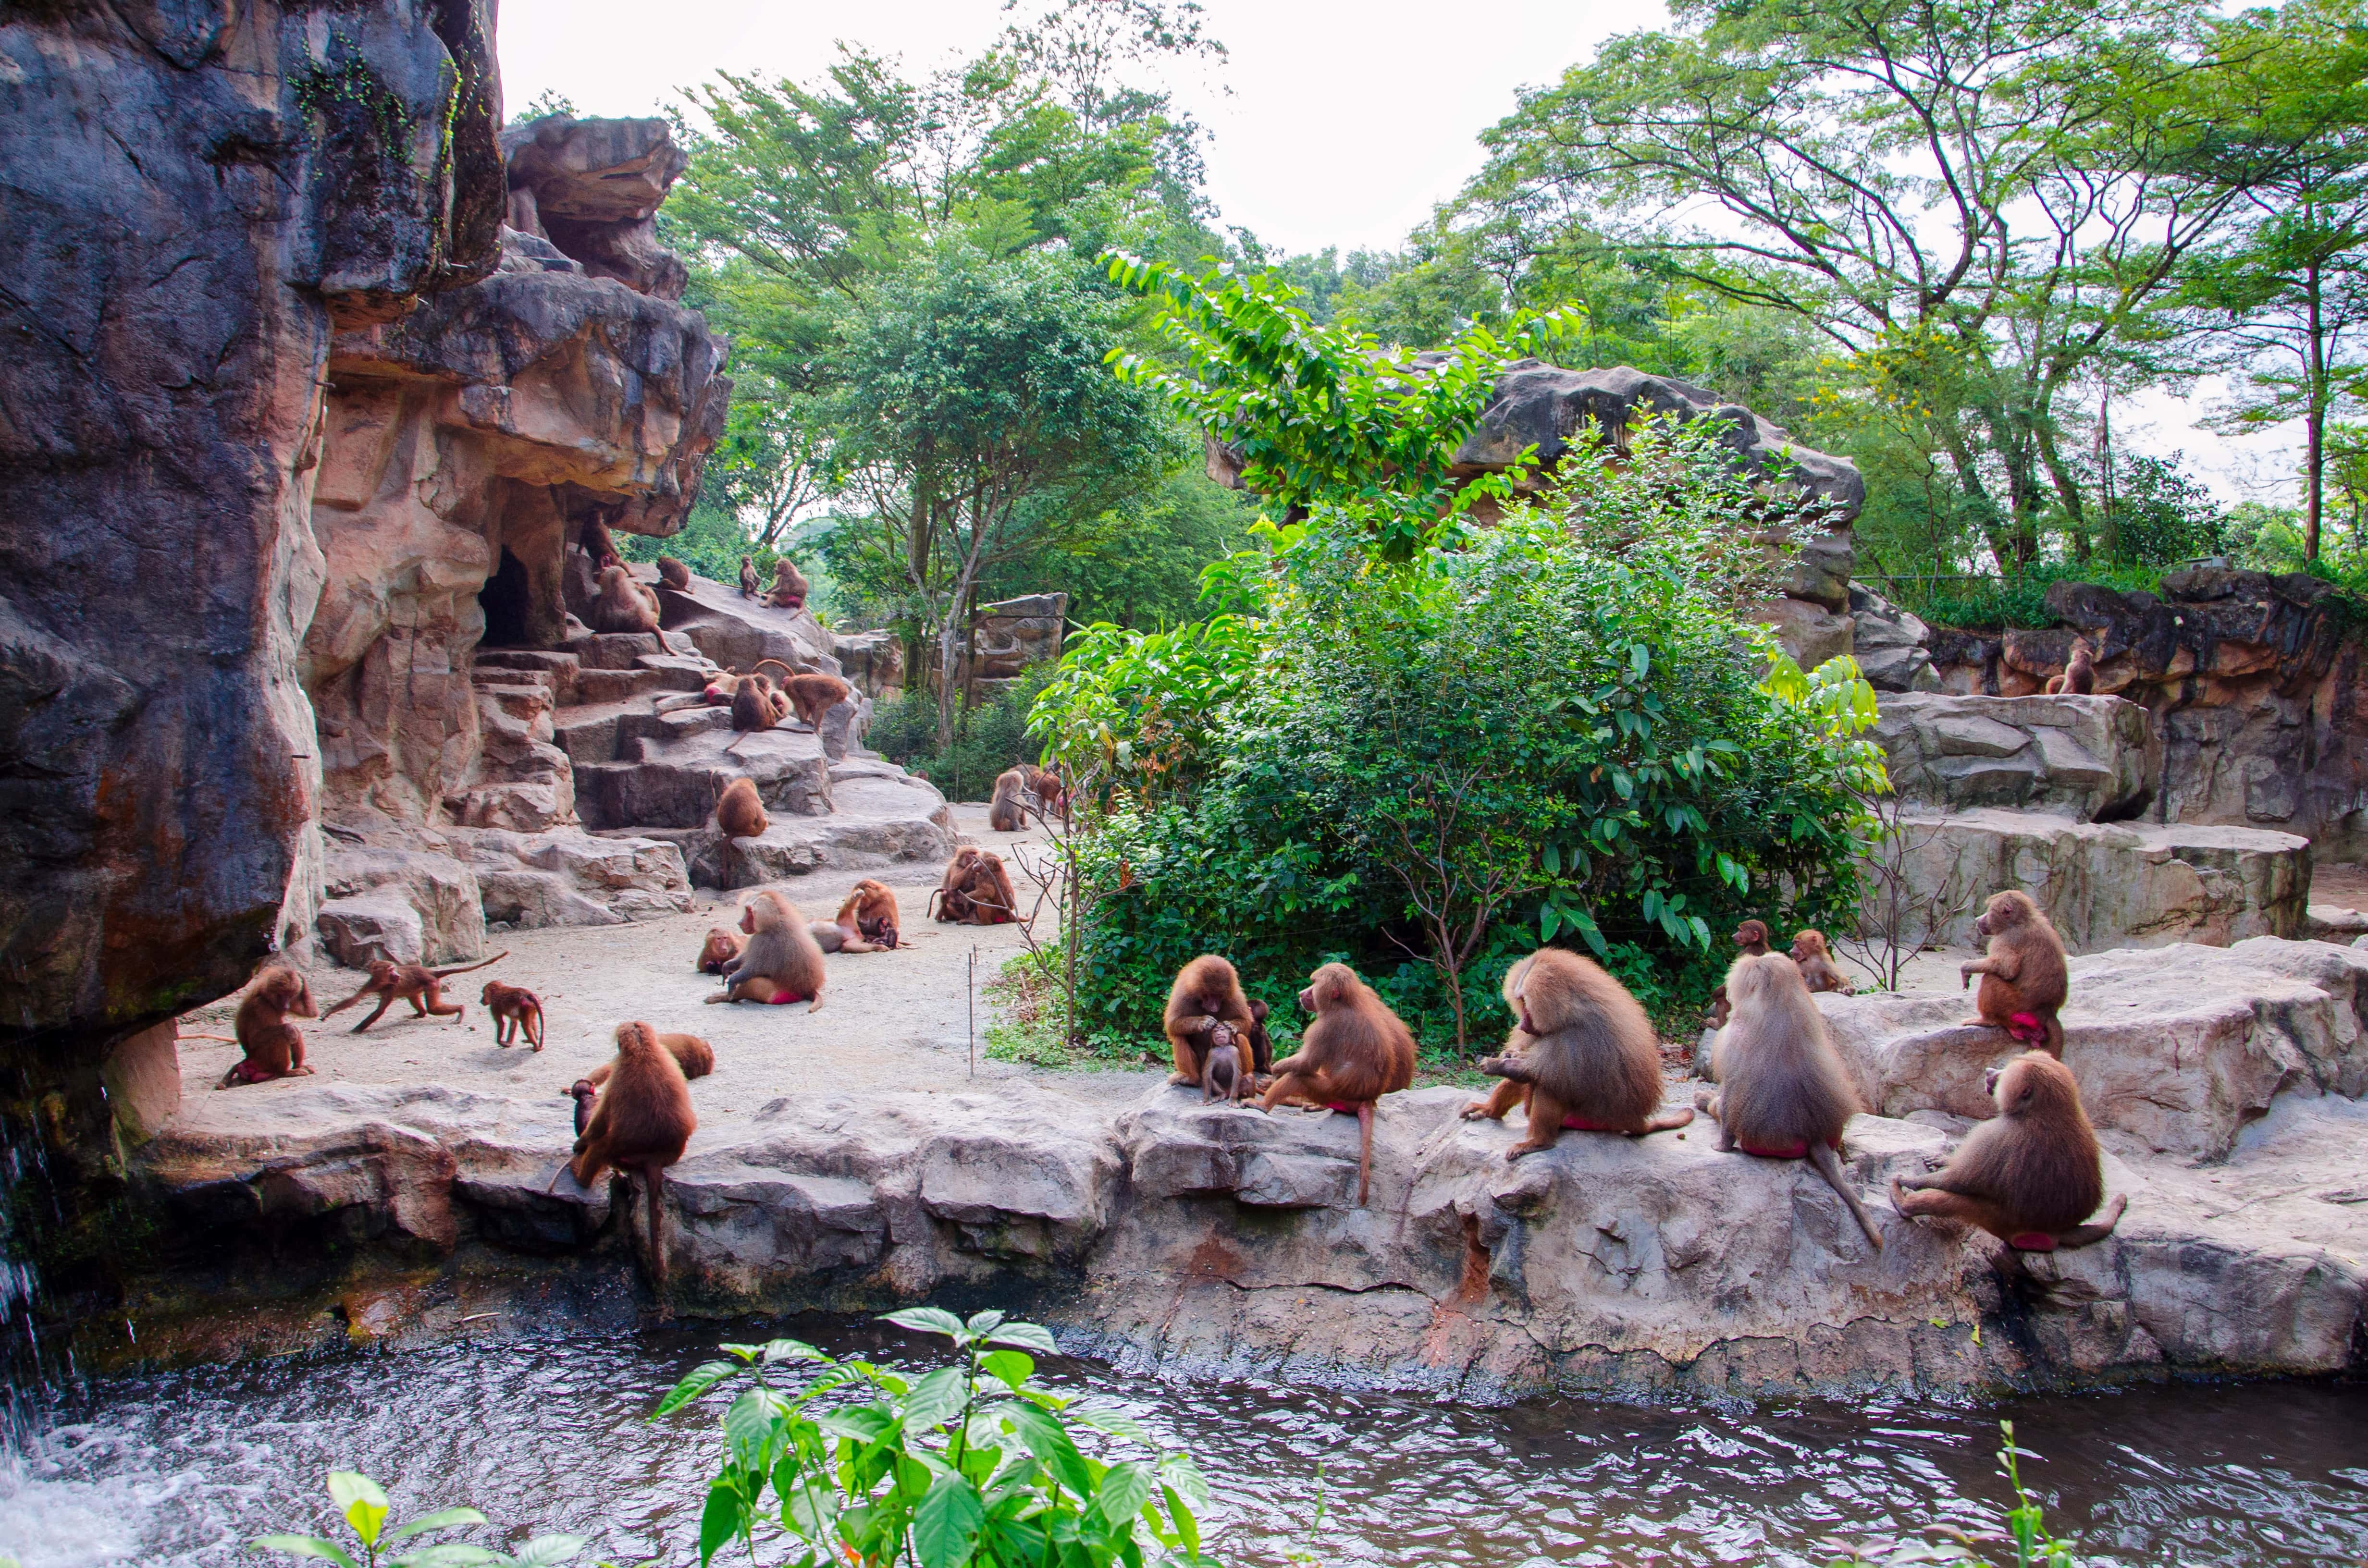 Hamadryad monkeys Singapore zoo Singapore